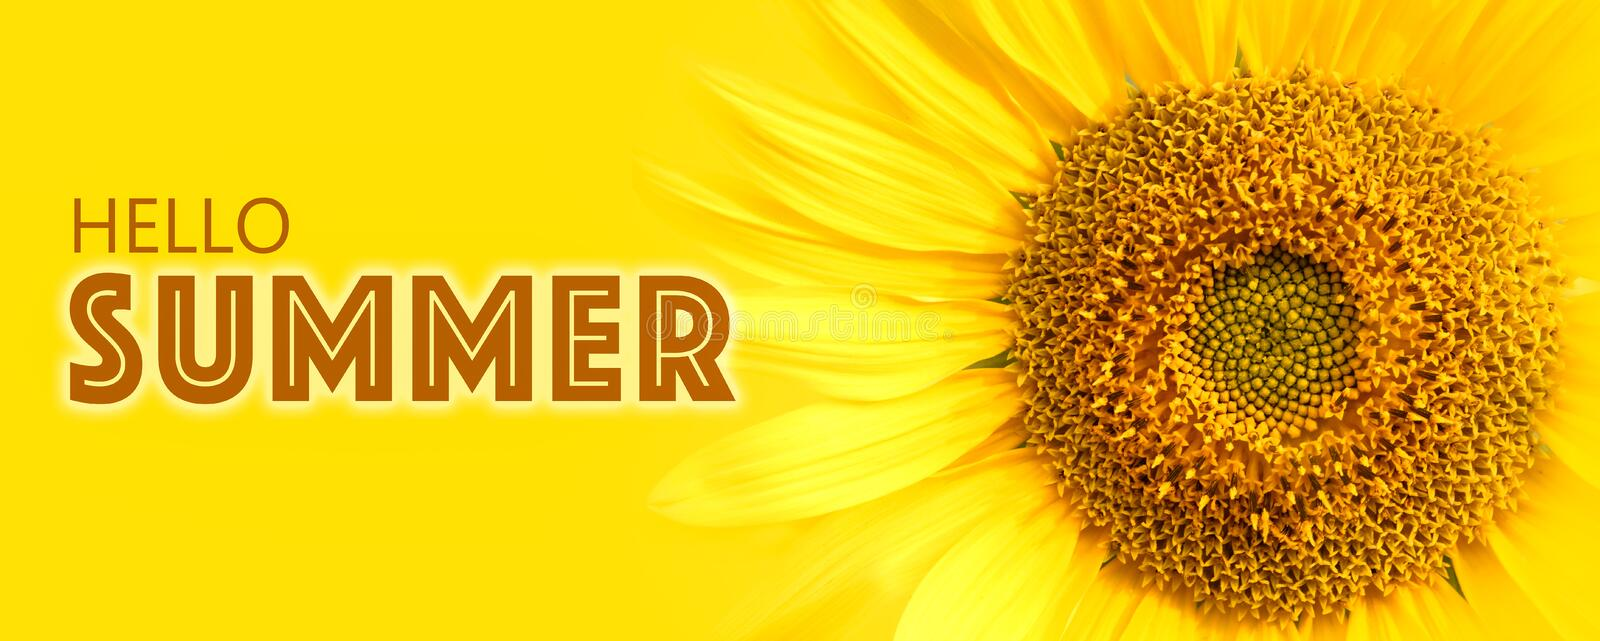 Hello Summer text and sunflower close-up details on yellow banner background macro photo. royalty free stock photography